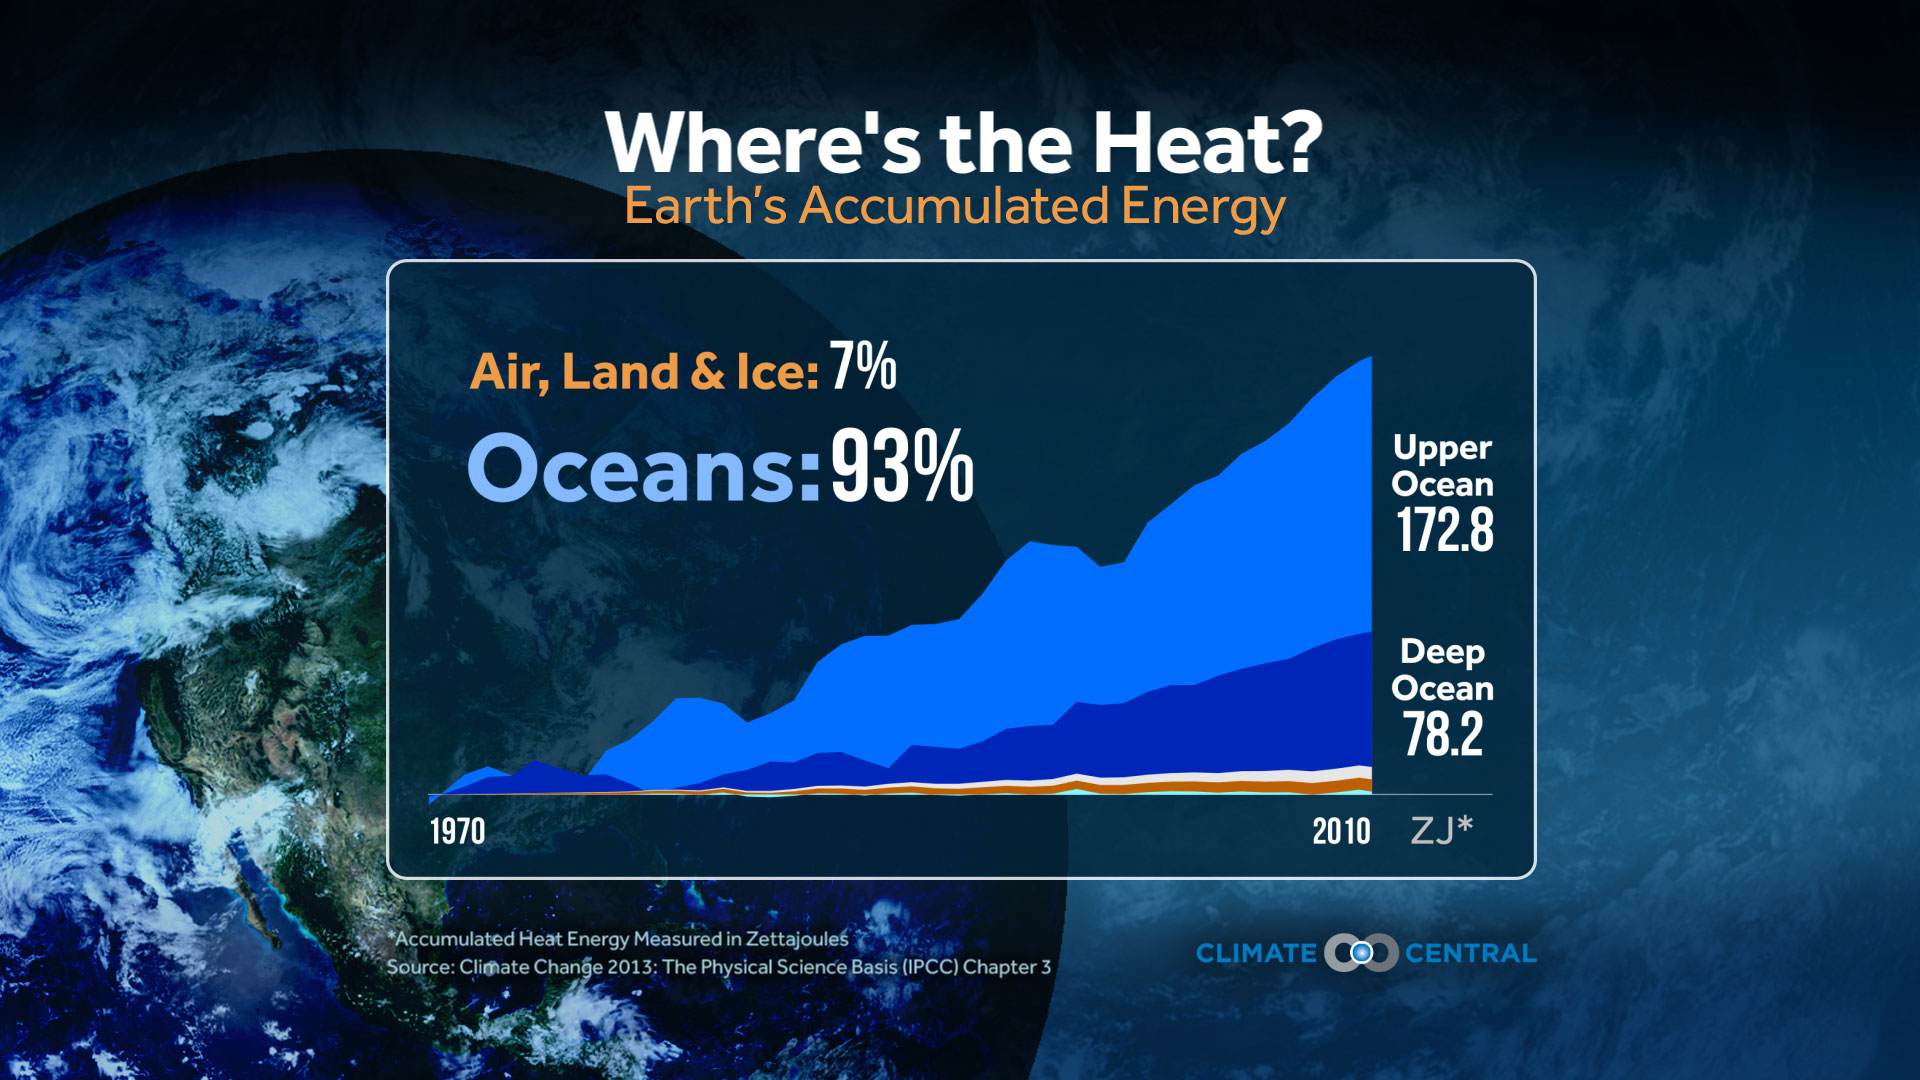 Heat Rising in the Oceans